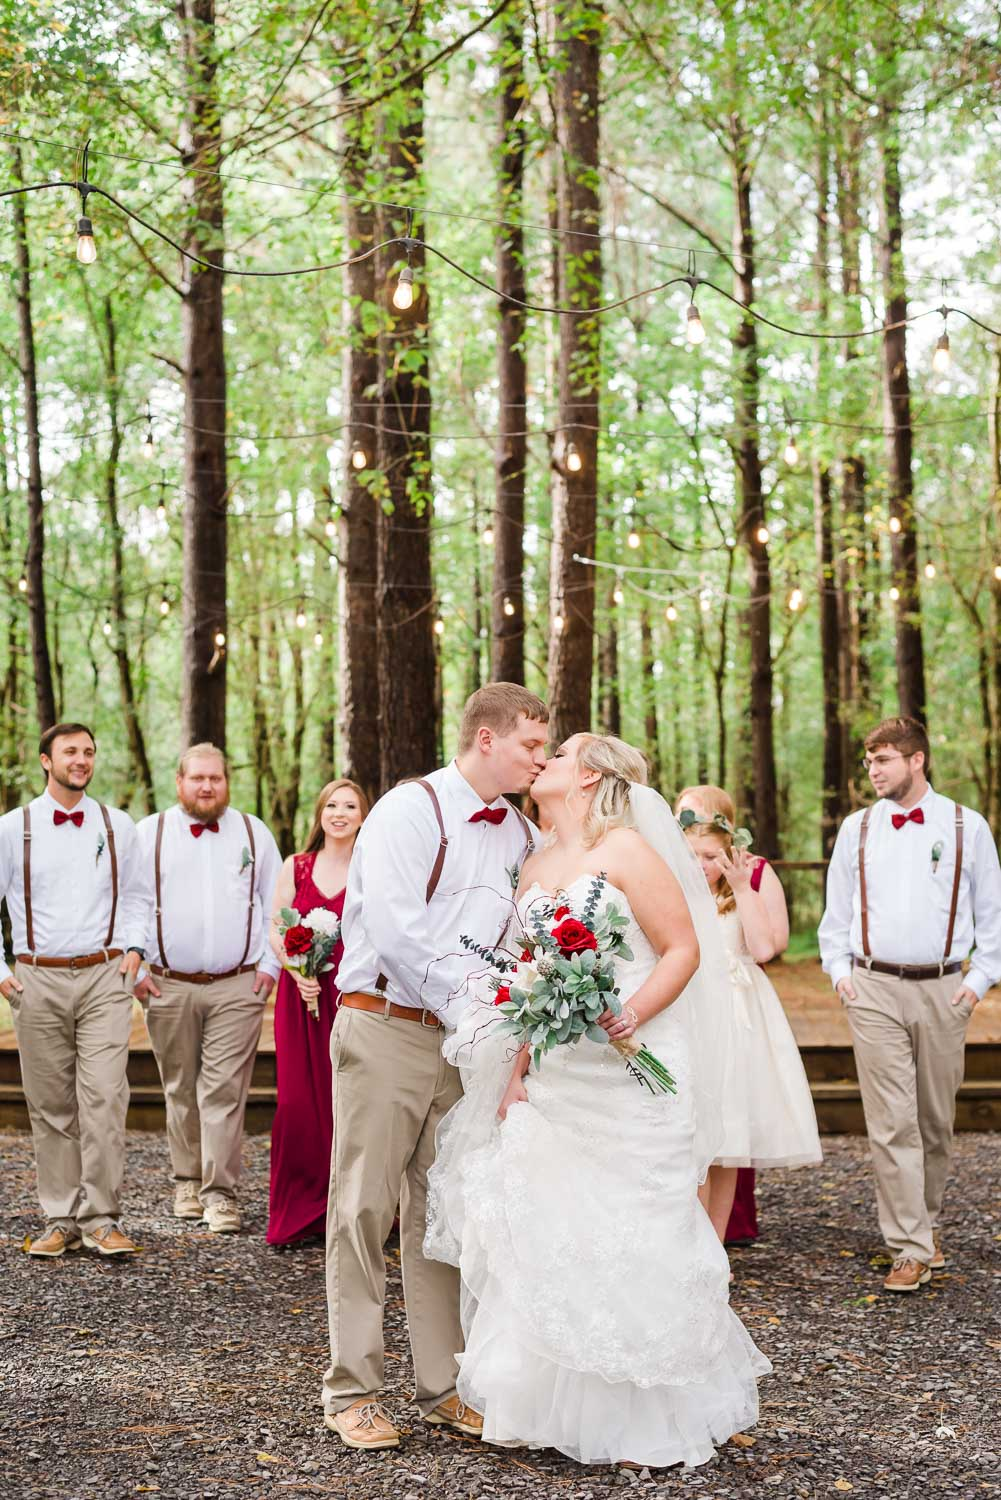 bride and groom and wedding party walking laughing and talking under the twinkly lights of the Forest Ceremony site at Hiwassee River weddings in October.